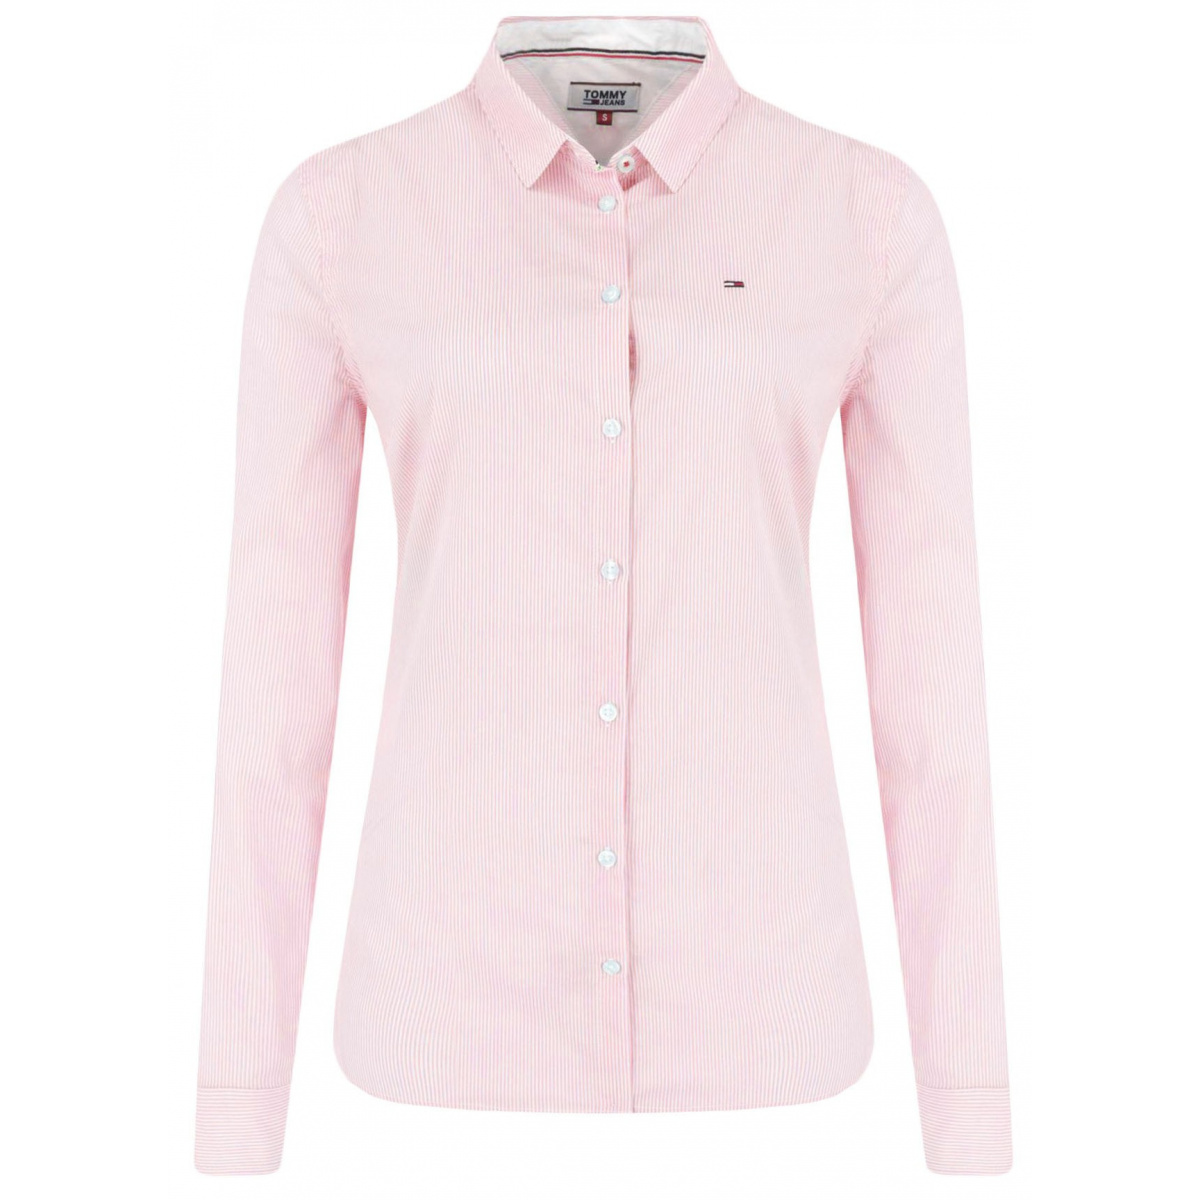 Chemisier manches longues femme rose TOMMY JEANS